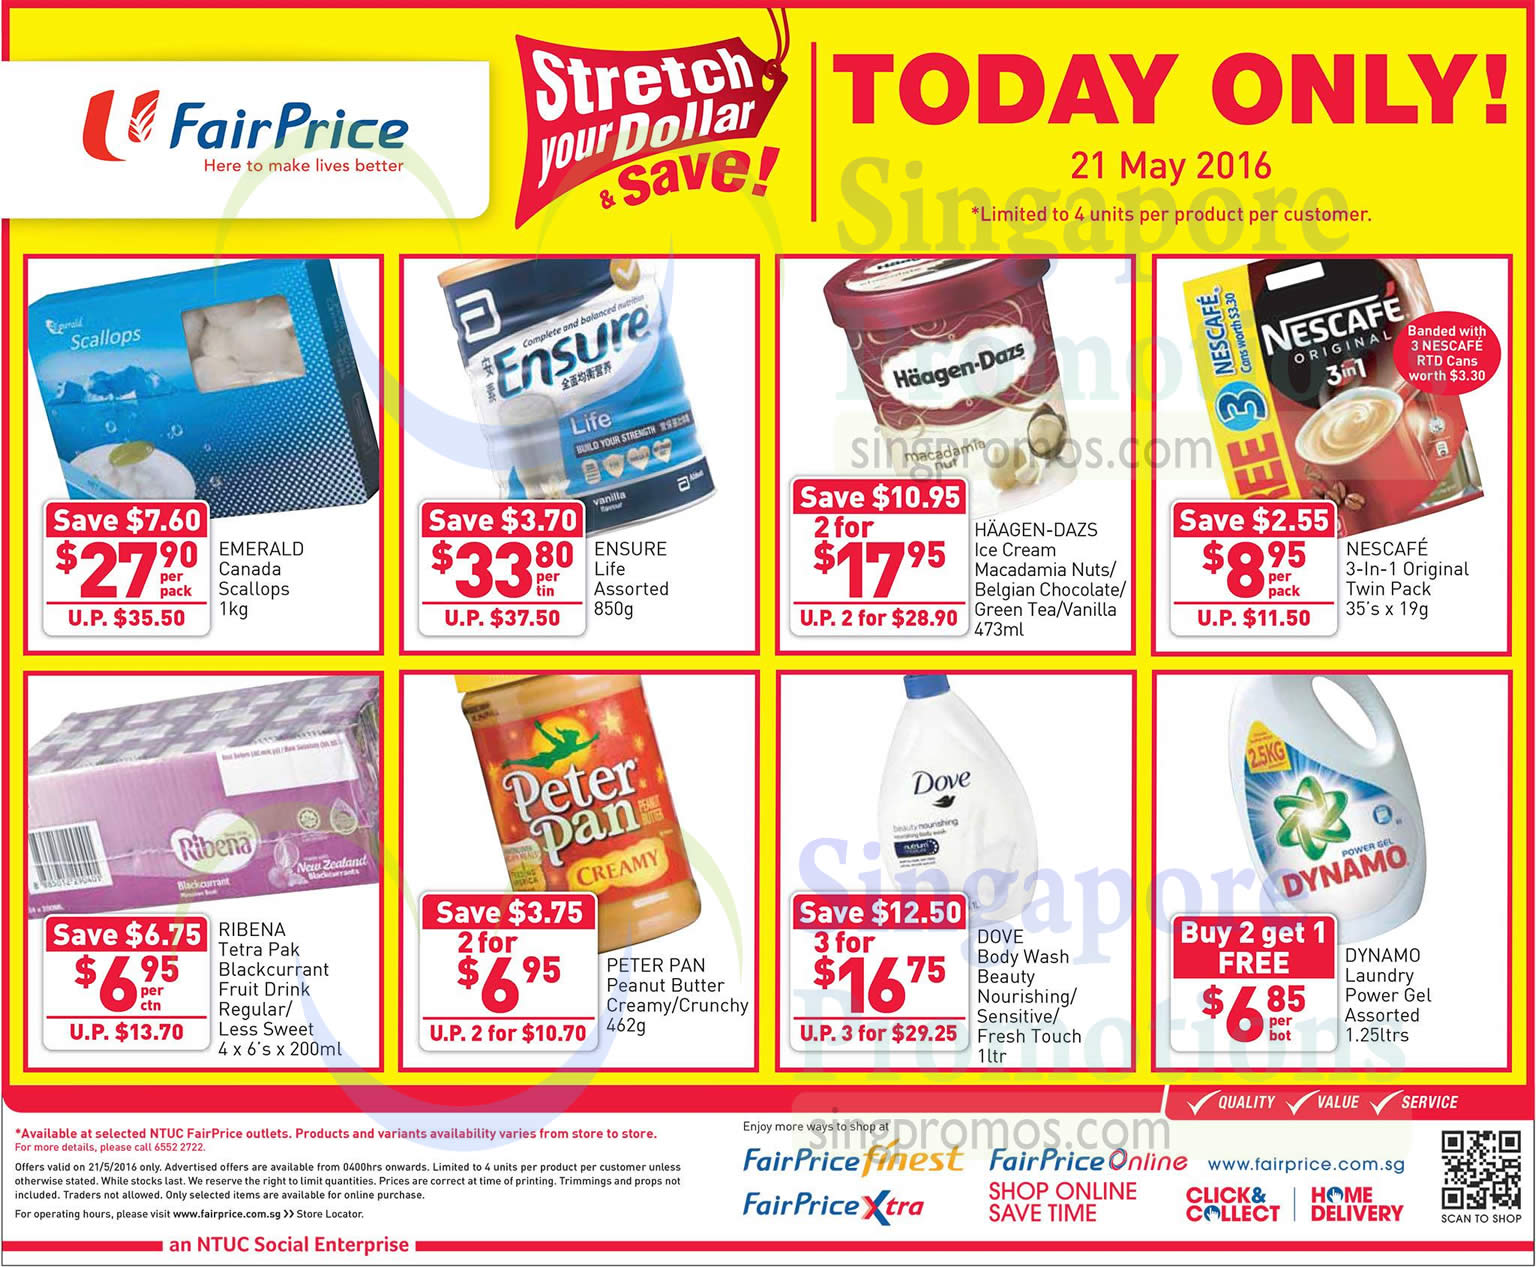 FairPrice 21 May 2016